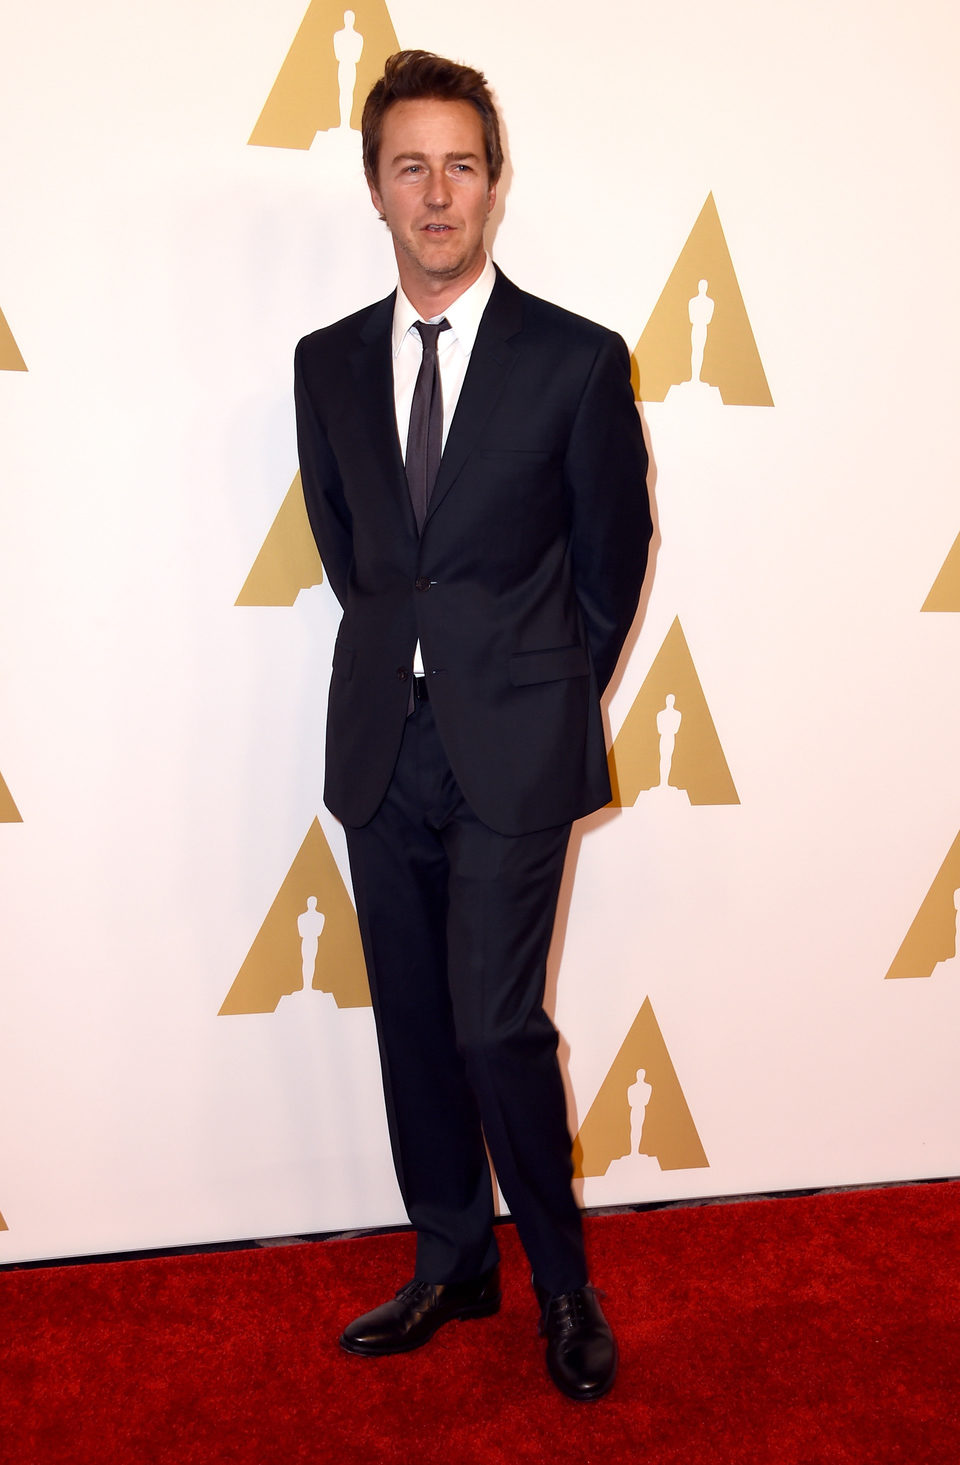 Edward Norton at the Oscars' Nominees Luncheon 2015 ...